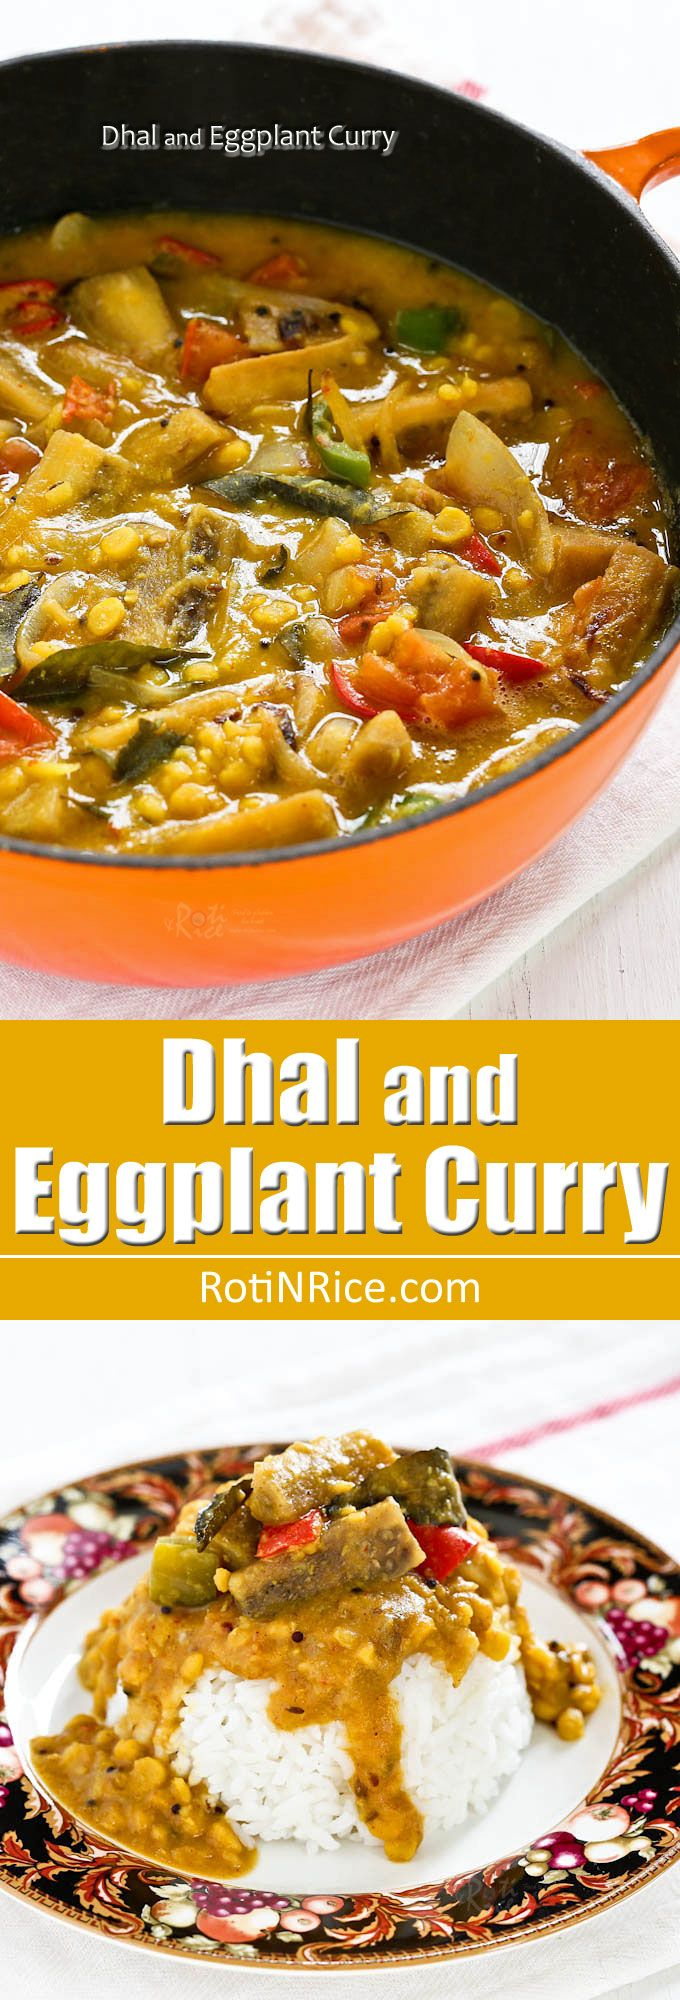 This mildly spiced creamy Dhal and Eggplant Curry is a great accompaniment to Indian flat breads and rice. Plus it is nutritious and very delicious. | RotiNRice.com